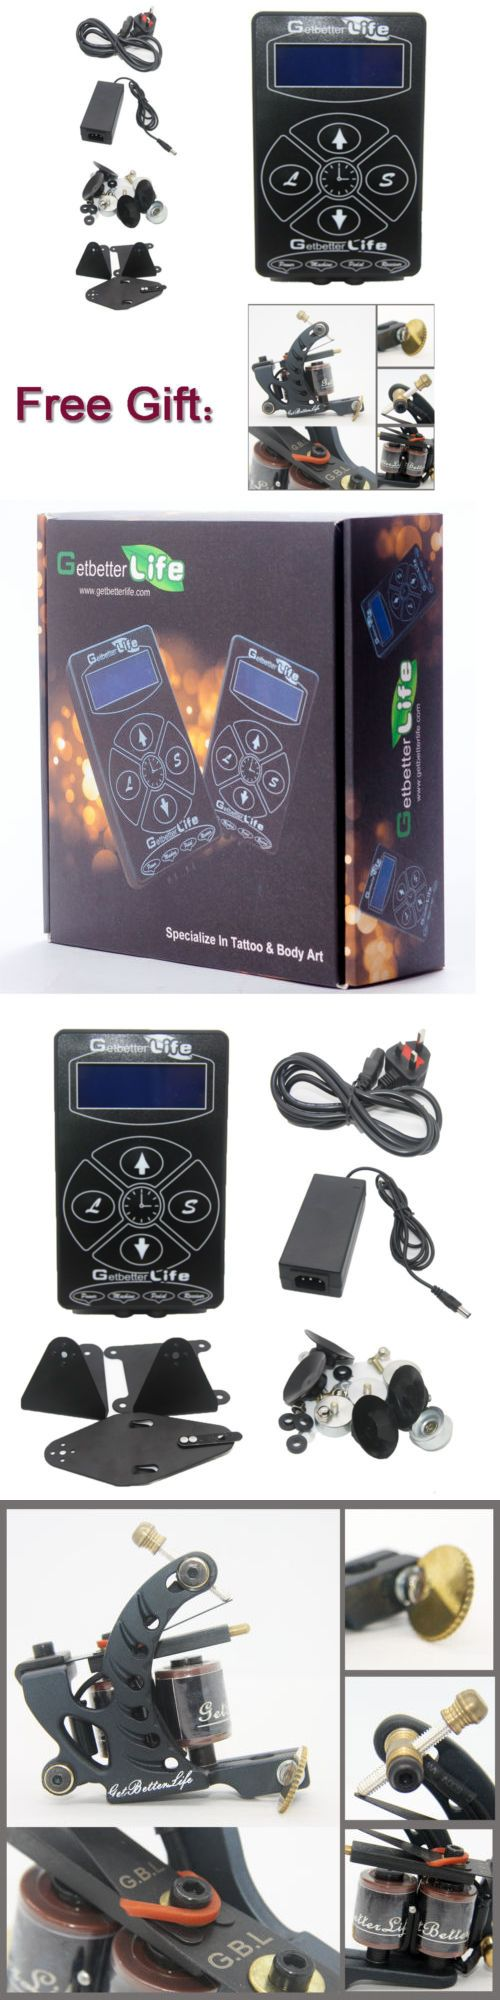 Tattoo Supplies: Pro Dual Digital Lcd Tattoo Power Supply Set Free 1Pcs Machine Gun Shader Kit -> BUY IT NOW ONLY: $39.99 on eBay!